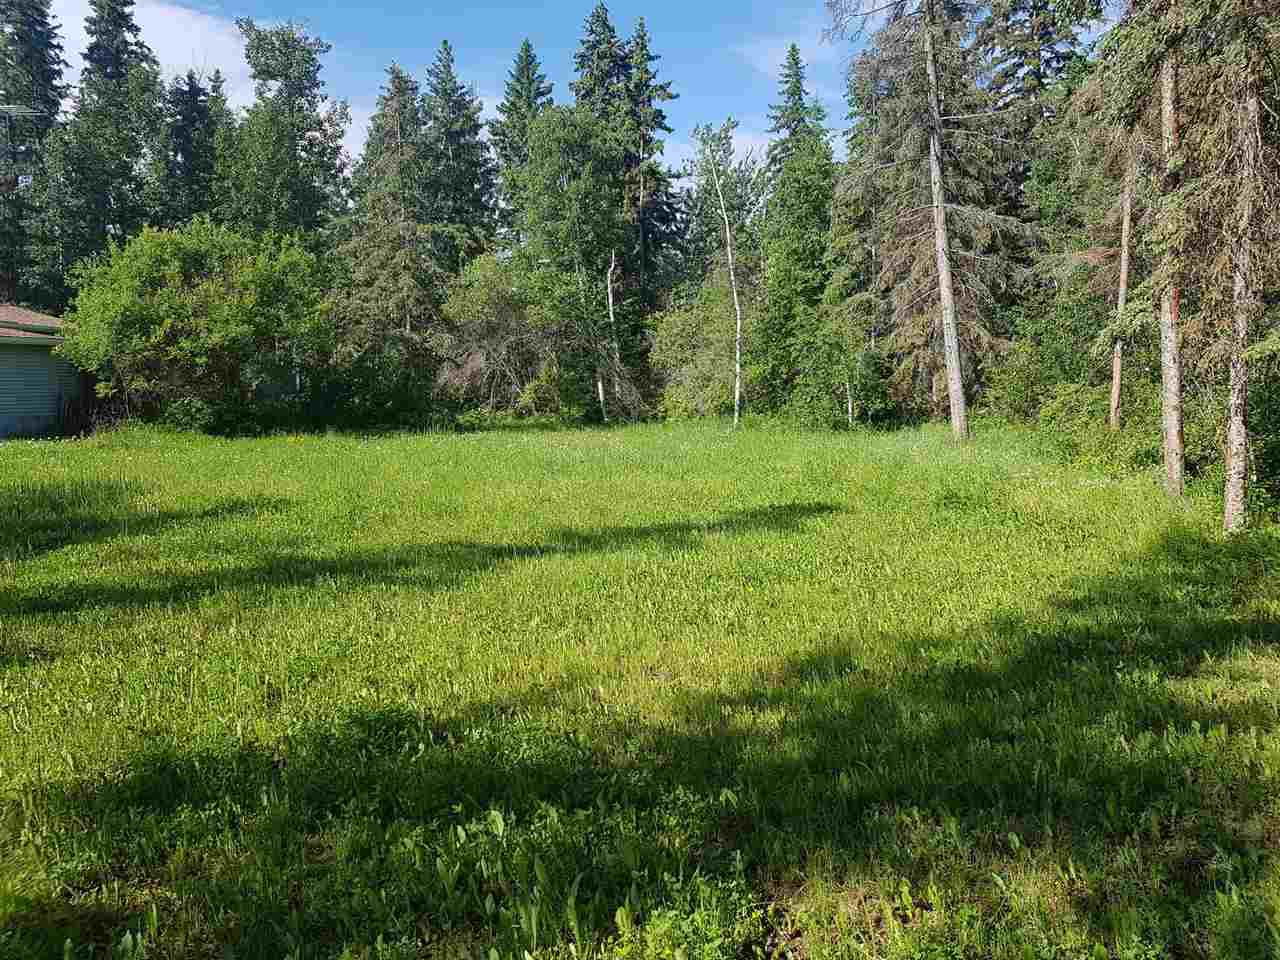 Main Photo: 4303 Spruce Point: Rural Lac Ste. Anne County Rural Land/Vacant Lot for sale : MLS®# E4160623